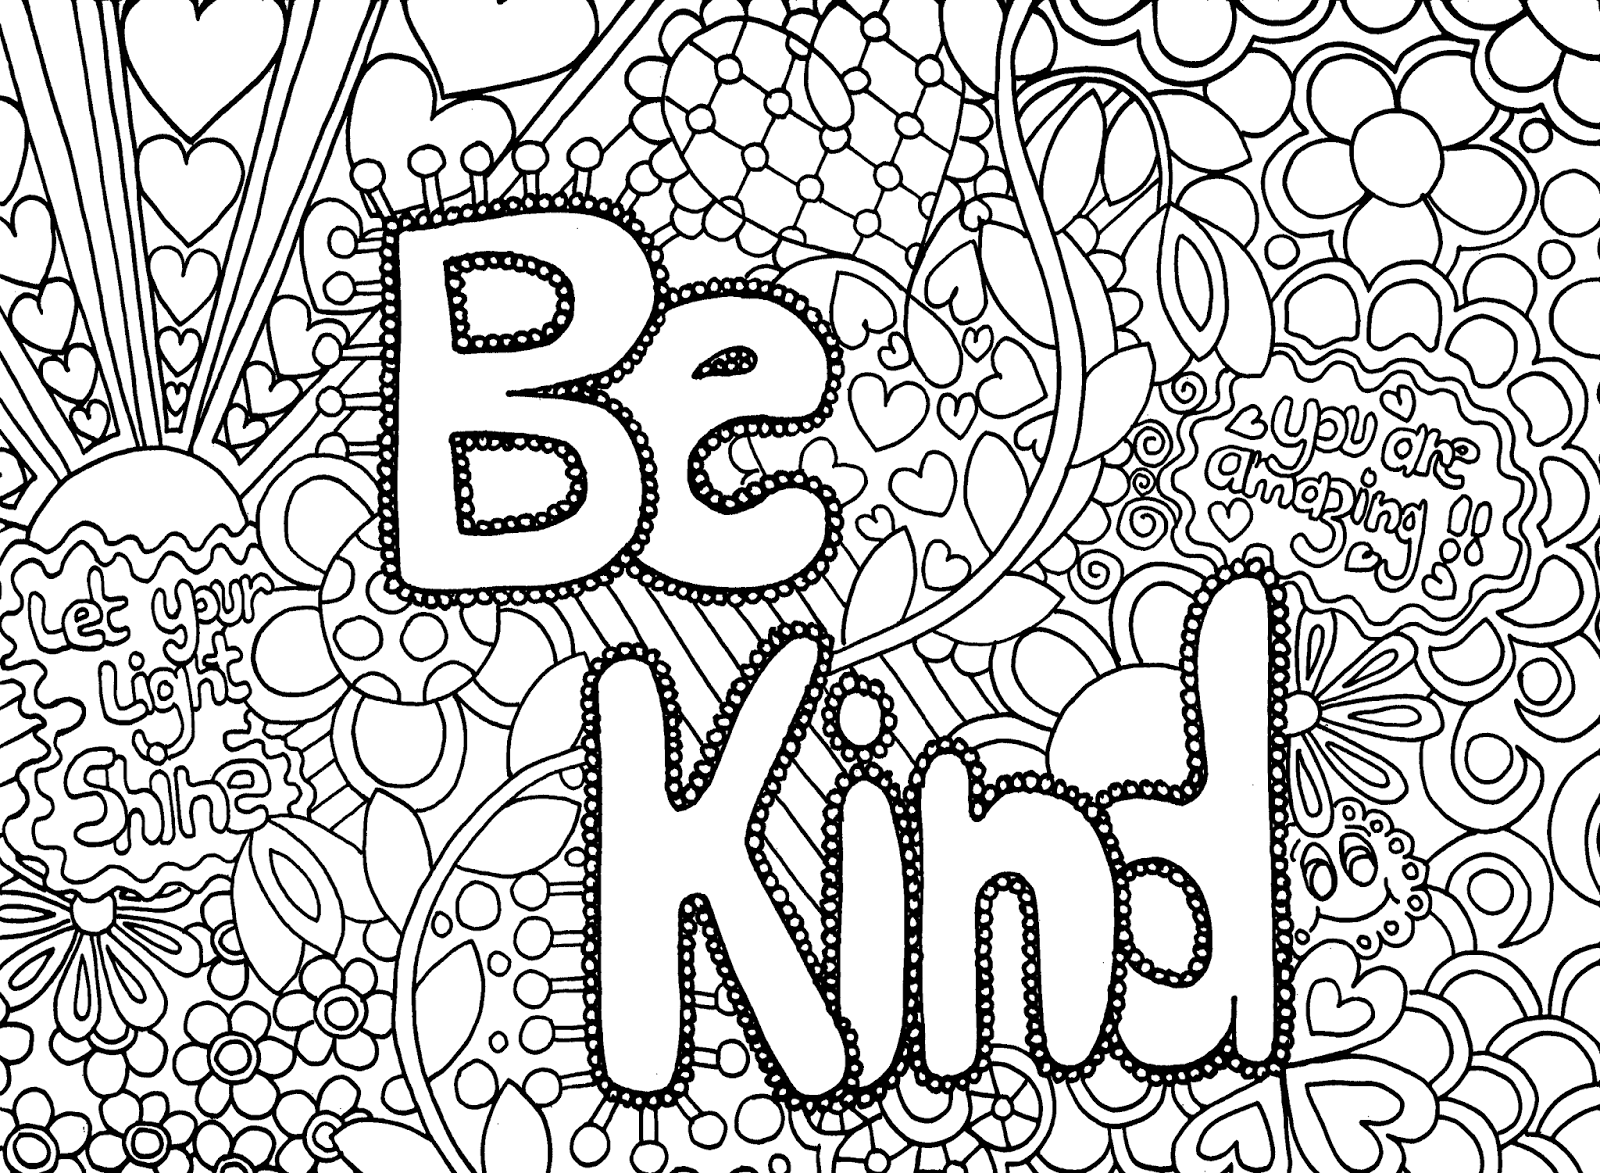 Colouring in for adults why - Adult Printable Art Coloring Pages Coloring Panda